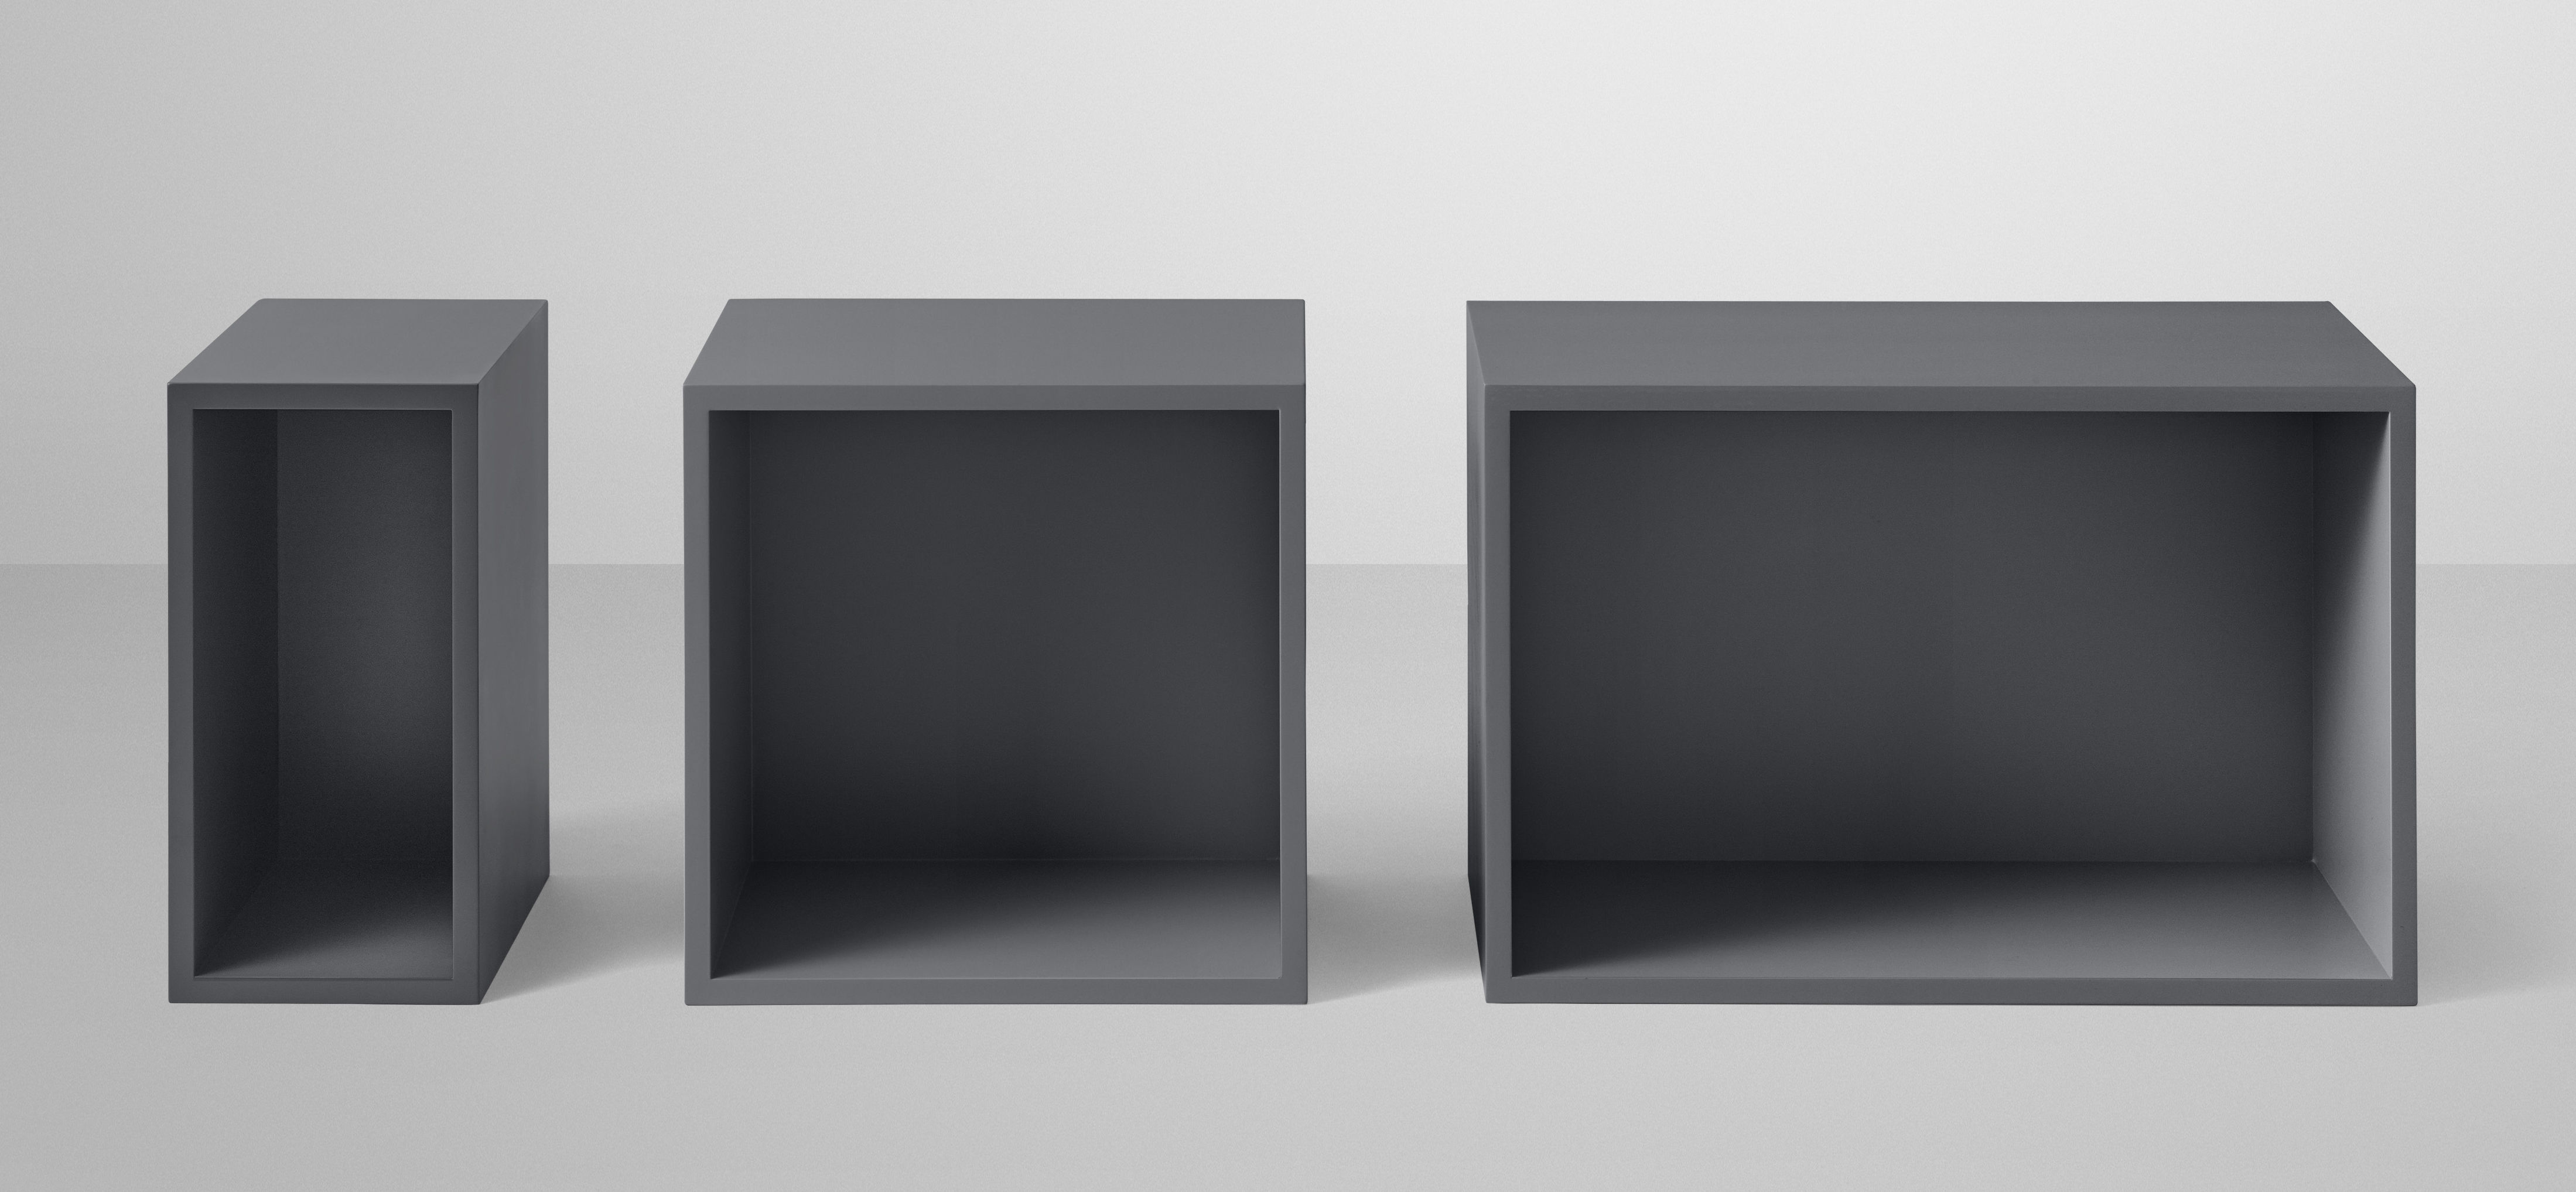 etag re stacked small rectangulaire 43x21 cm avec fond gris fonc muuto. Black Bedroom Furniture Sets. Home Design Ideas